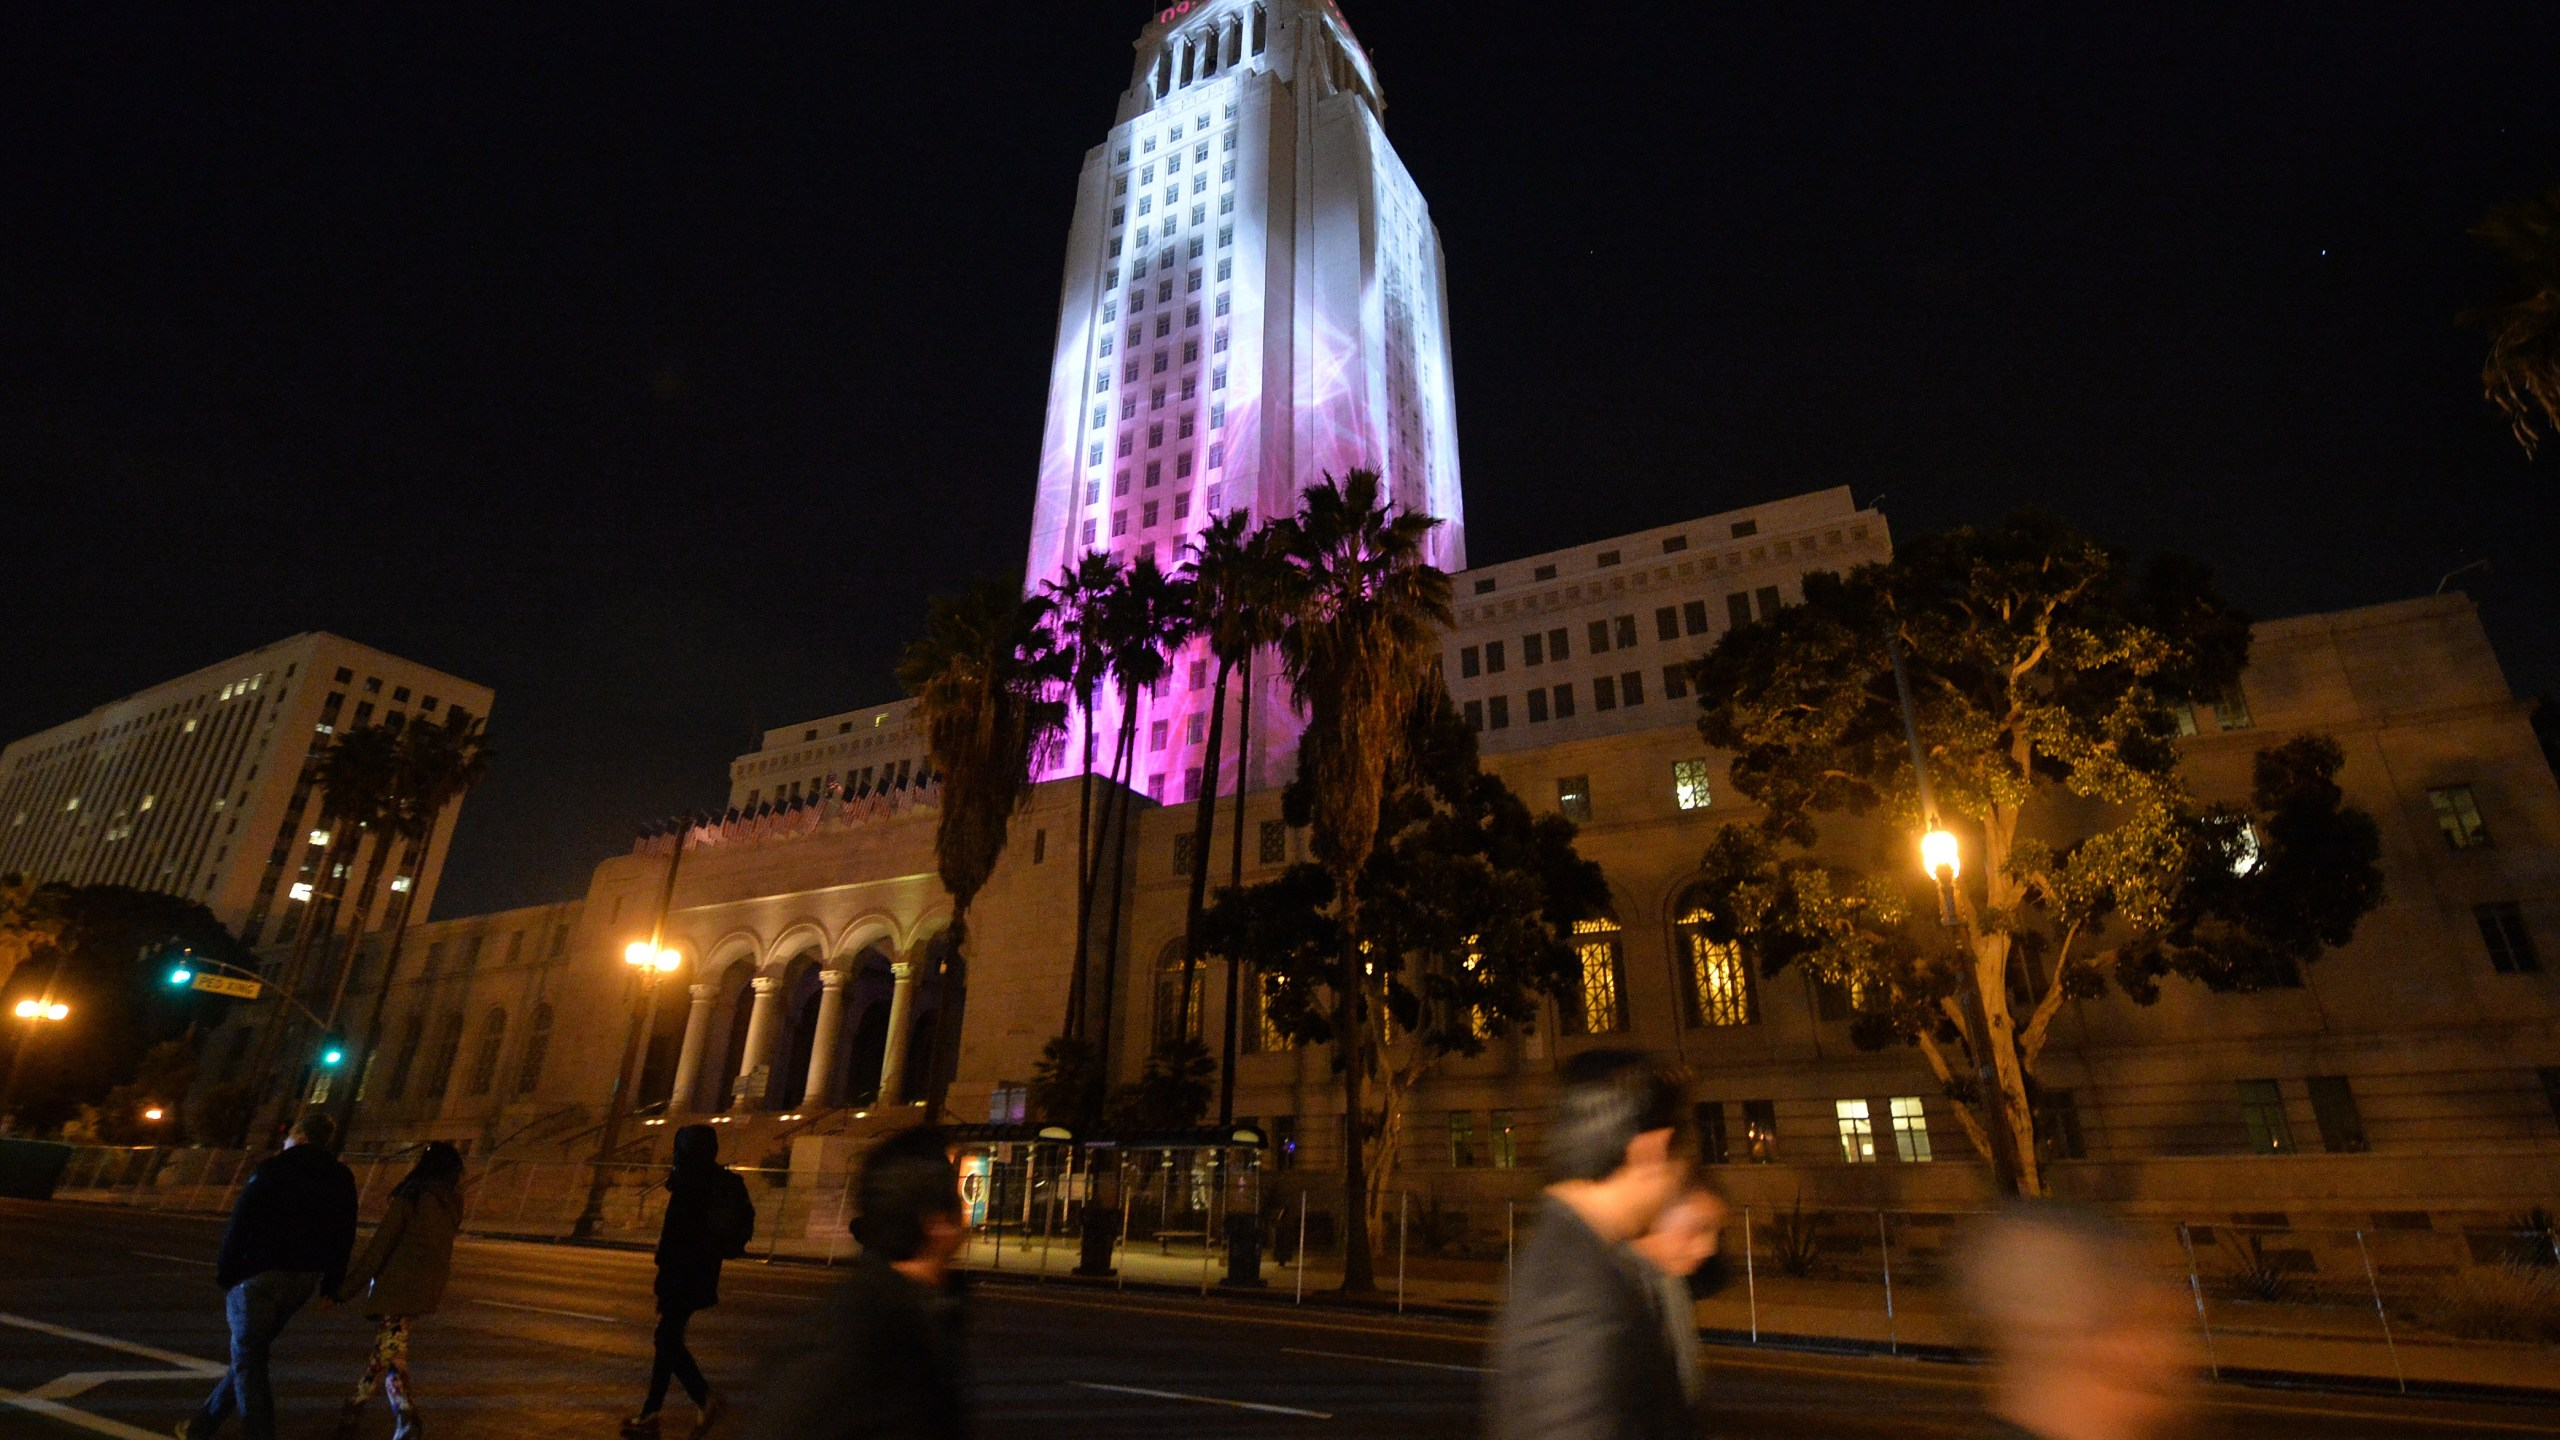 City Hall is lit by two dimensional projected images while people celebrate the New Year at the Grand Park's N.Y.E.L.A. event in downtown Los Angeles on December 31, 2014. (Credit: MARK RALSTON/AFP via Getty Images)